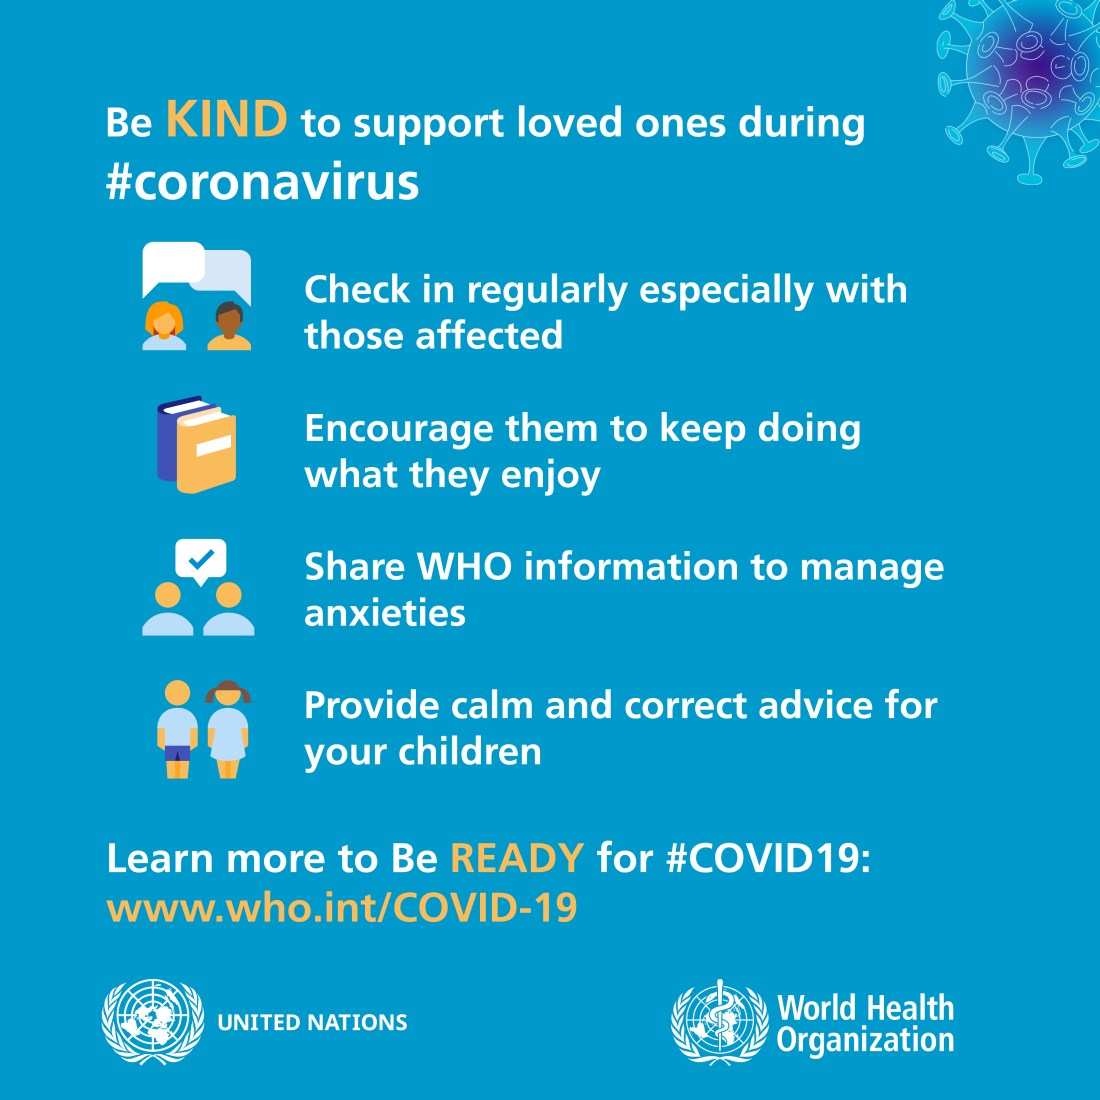 Coronavirus Basic Protective Measures- Be kind and supportive